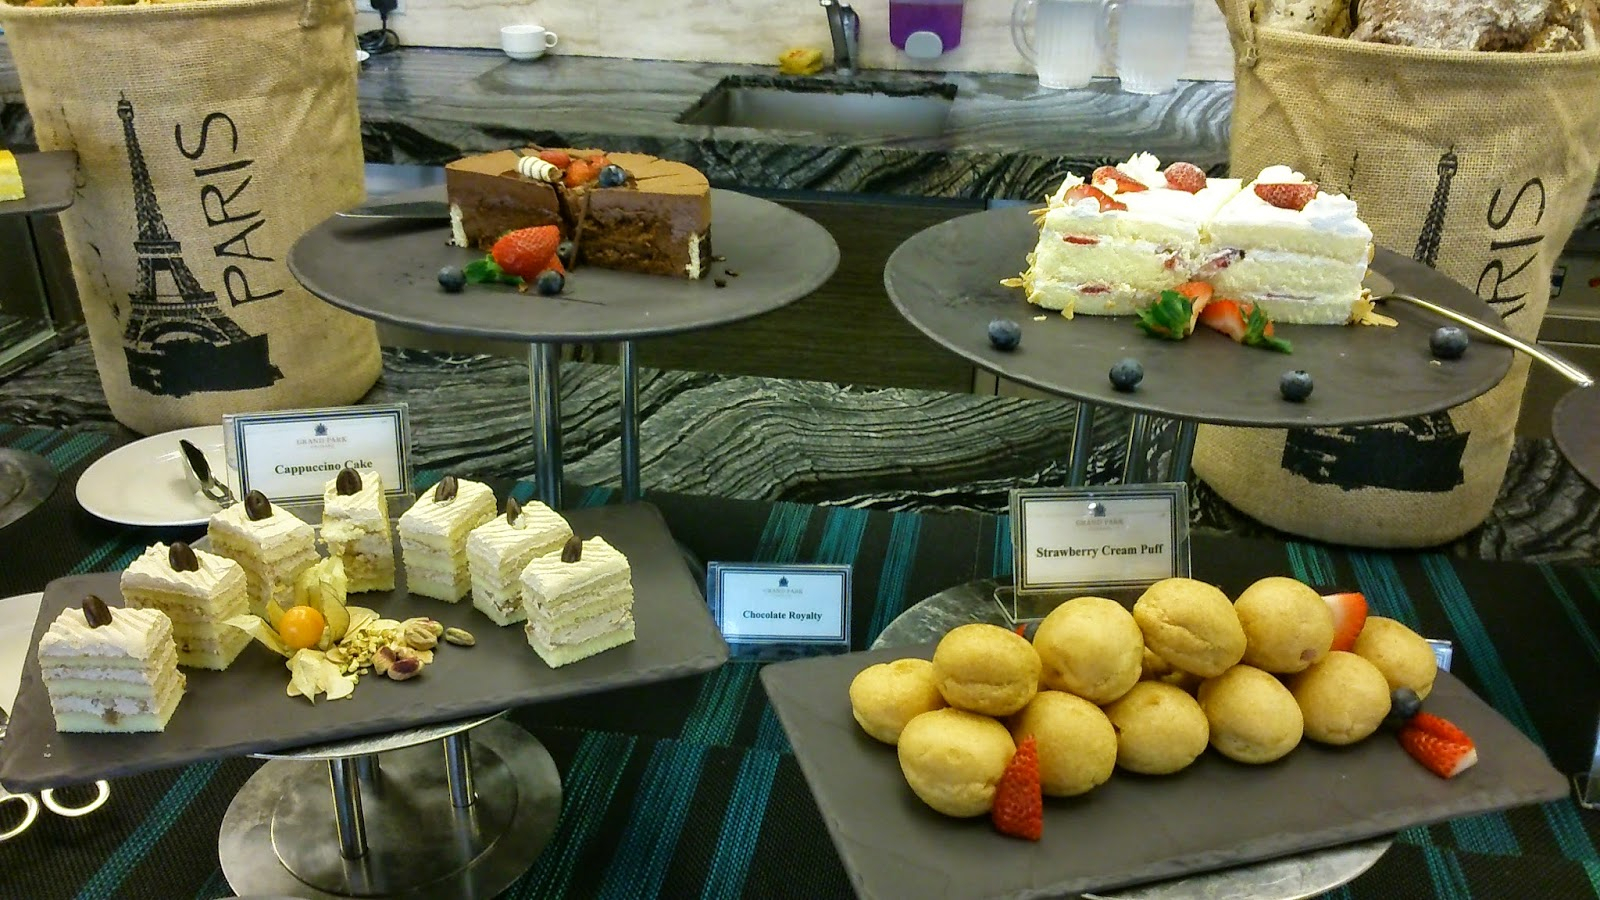 Summer Loves To Eat! Singapore Food Blog: Buffet For Cappuccino Finished Buffets (View 25 of 30)